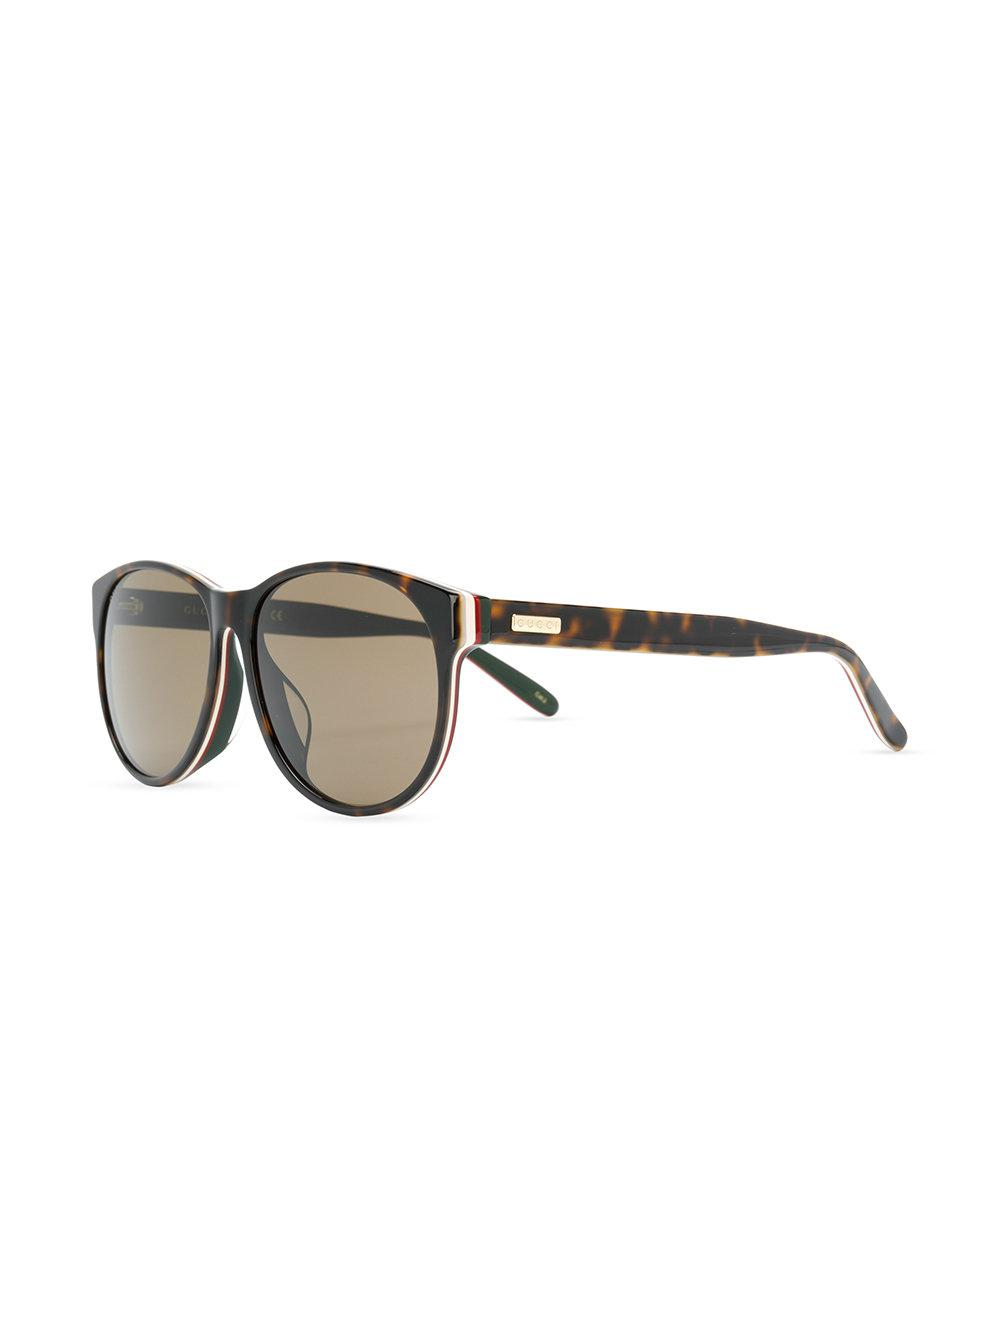 58735eb3b23 Gucci Classic Tortoiseshell Sunglasses in Brown for Men - Lyst